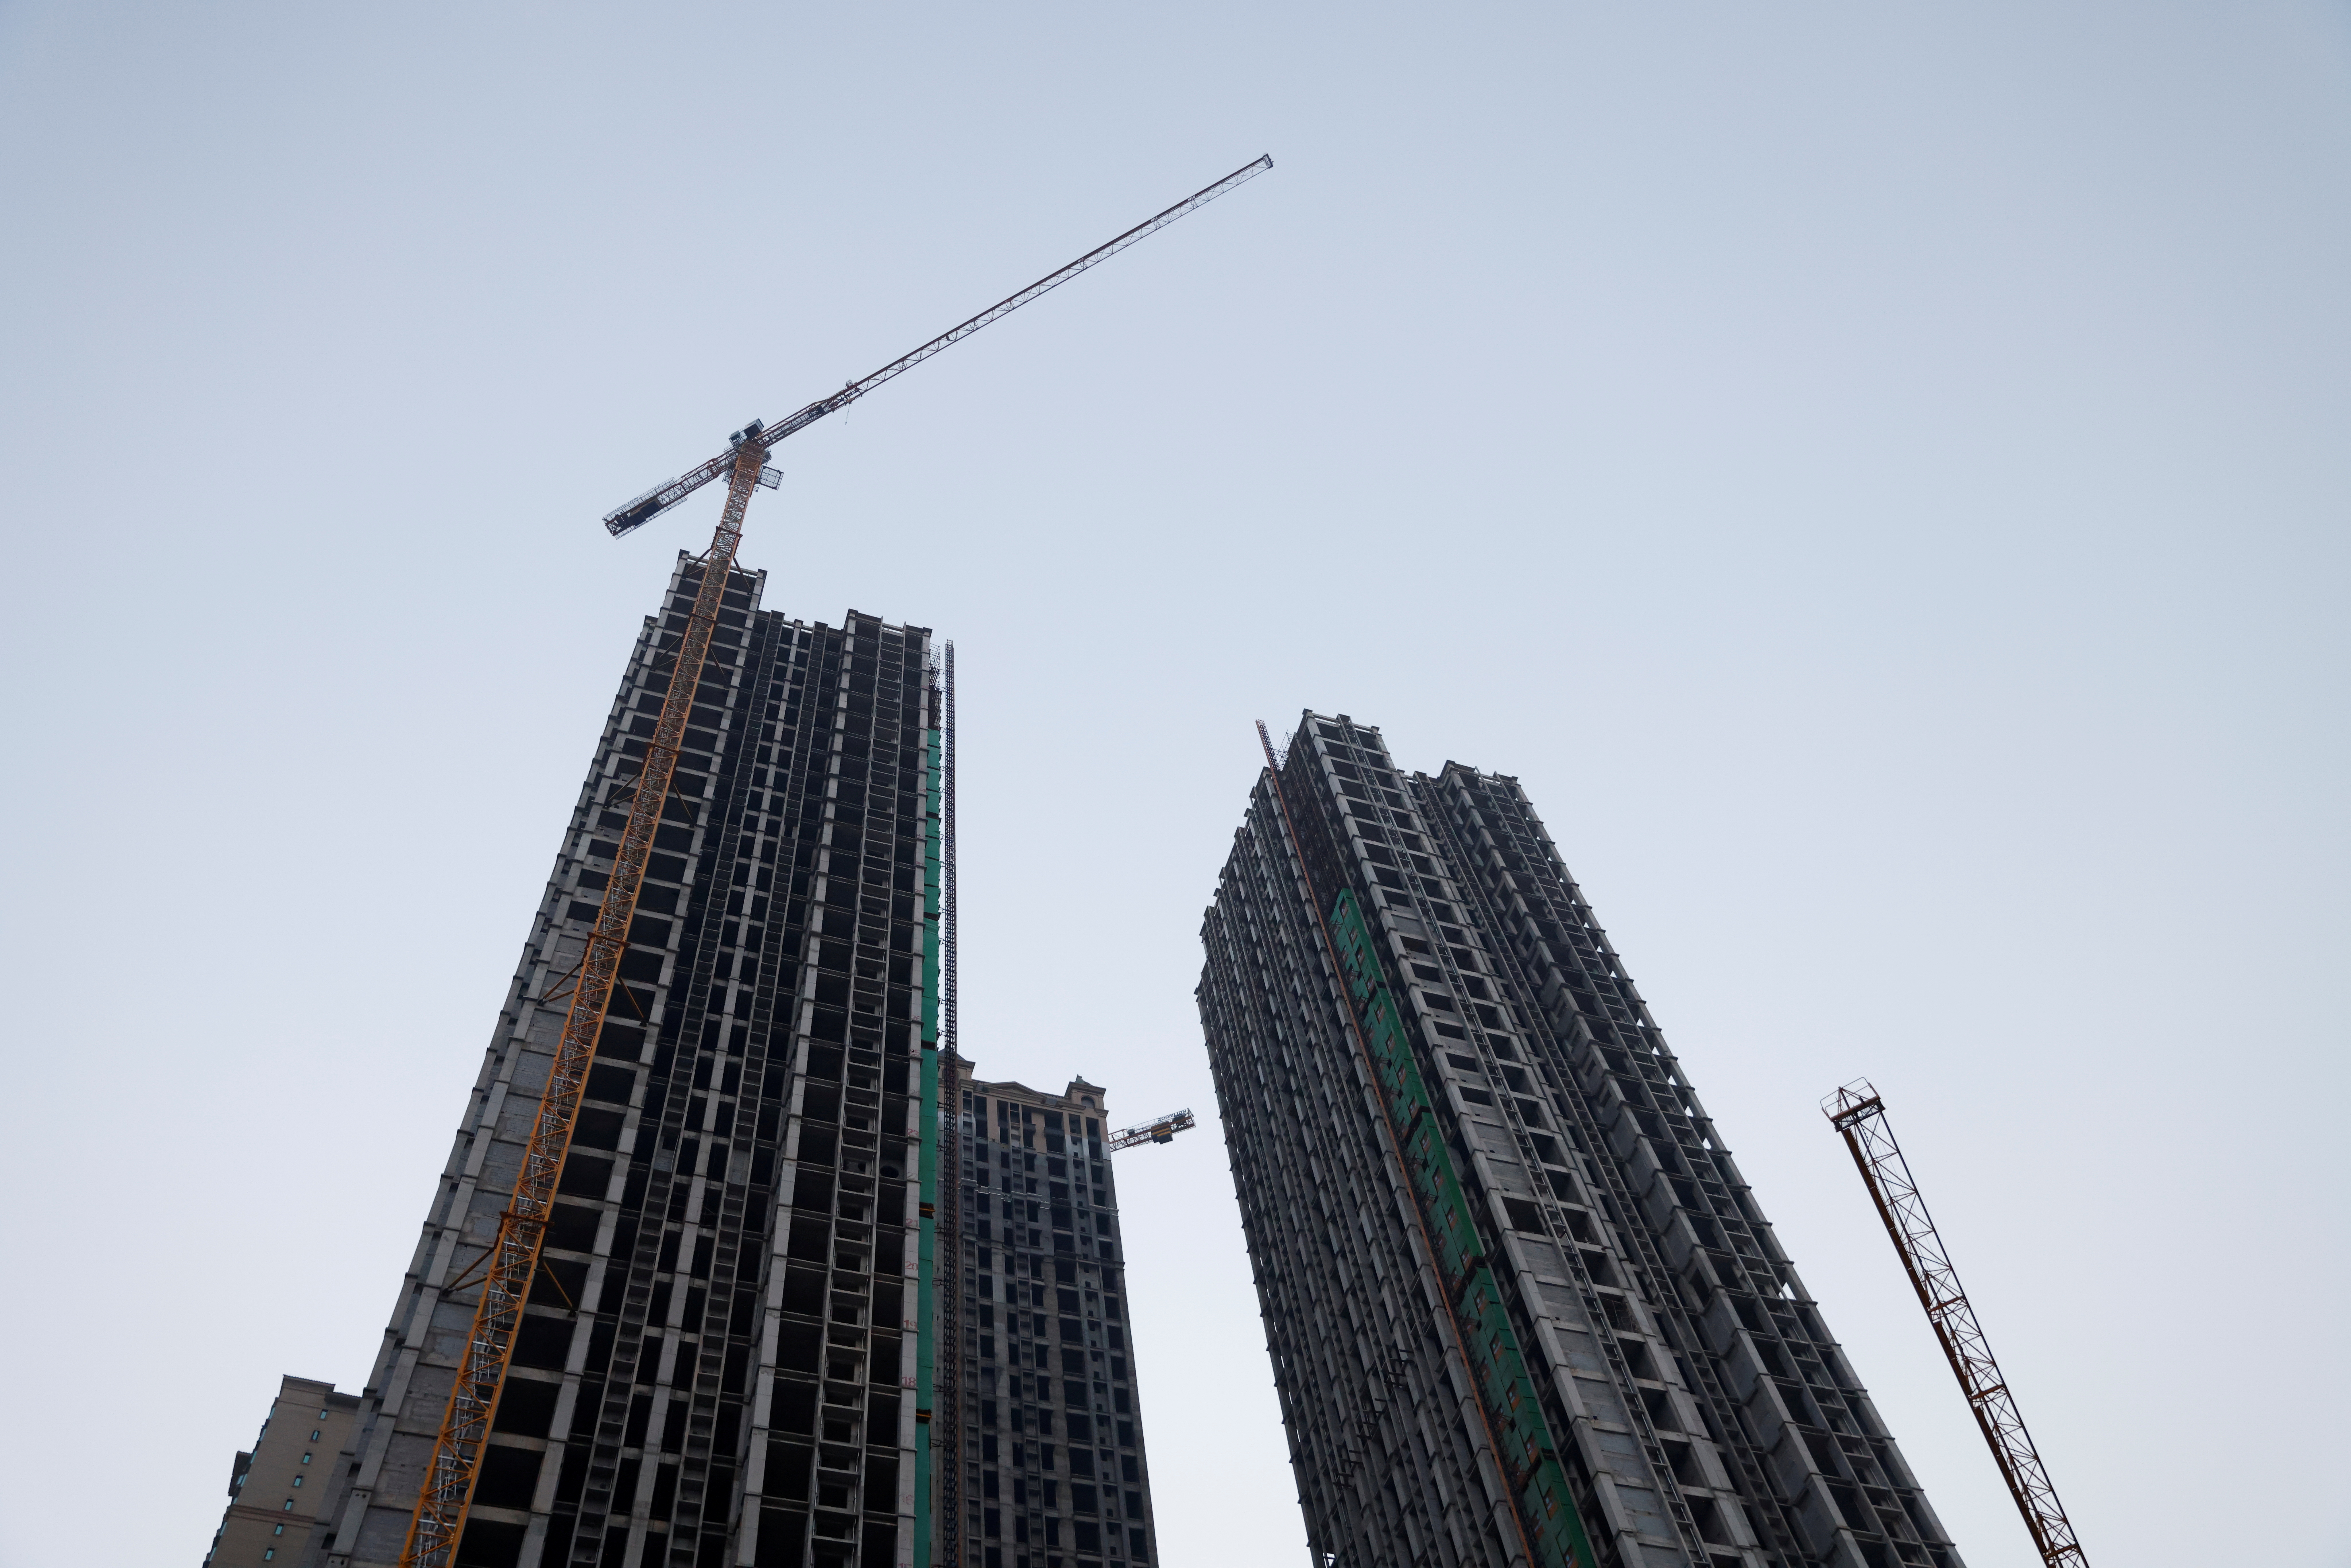 Cranes stand next to unfinished residential buildings at the Evergrande Oasis, a housing complex developed by Evergrande Group, in Luoyang, China September 15, 2021.  REUTERS/Carlos Garcia Rawlins/File Photo